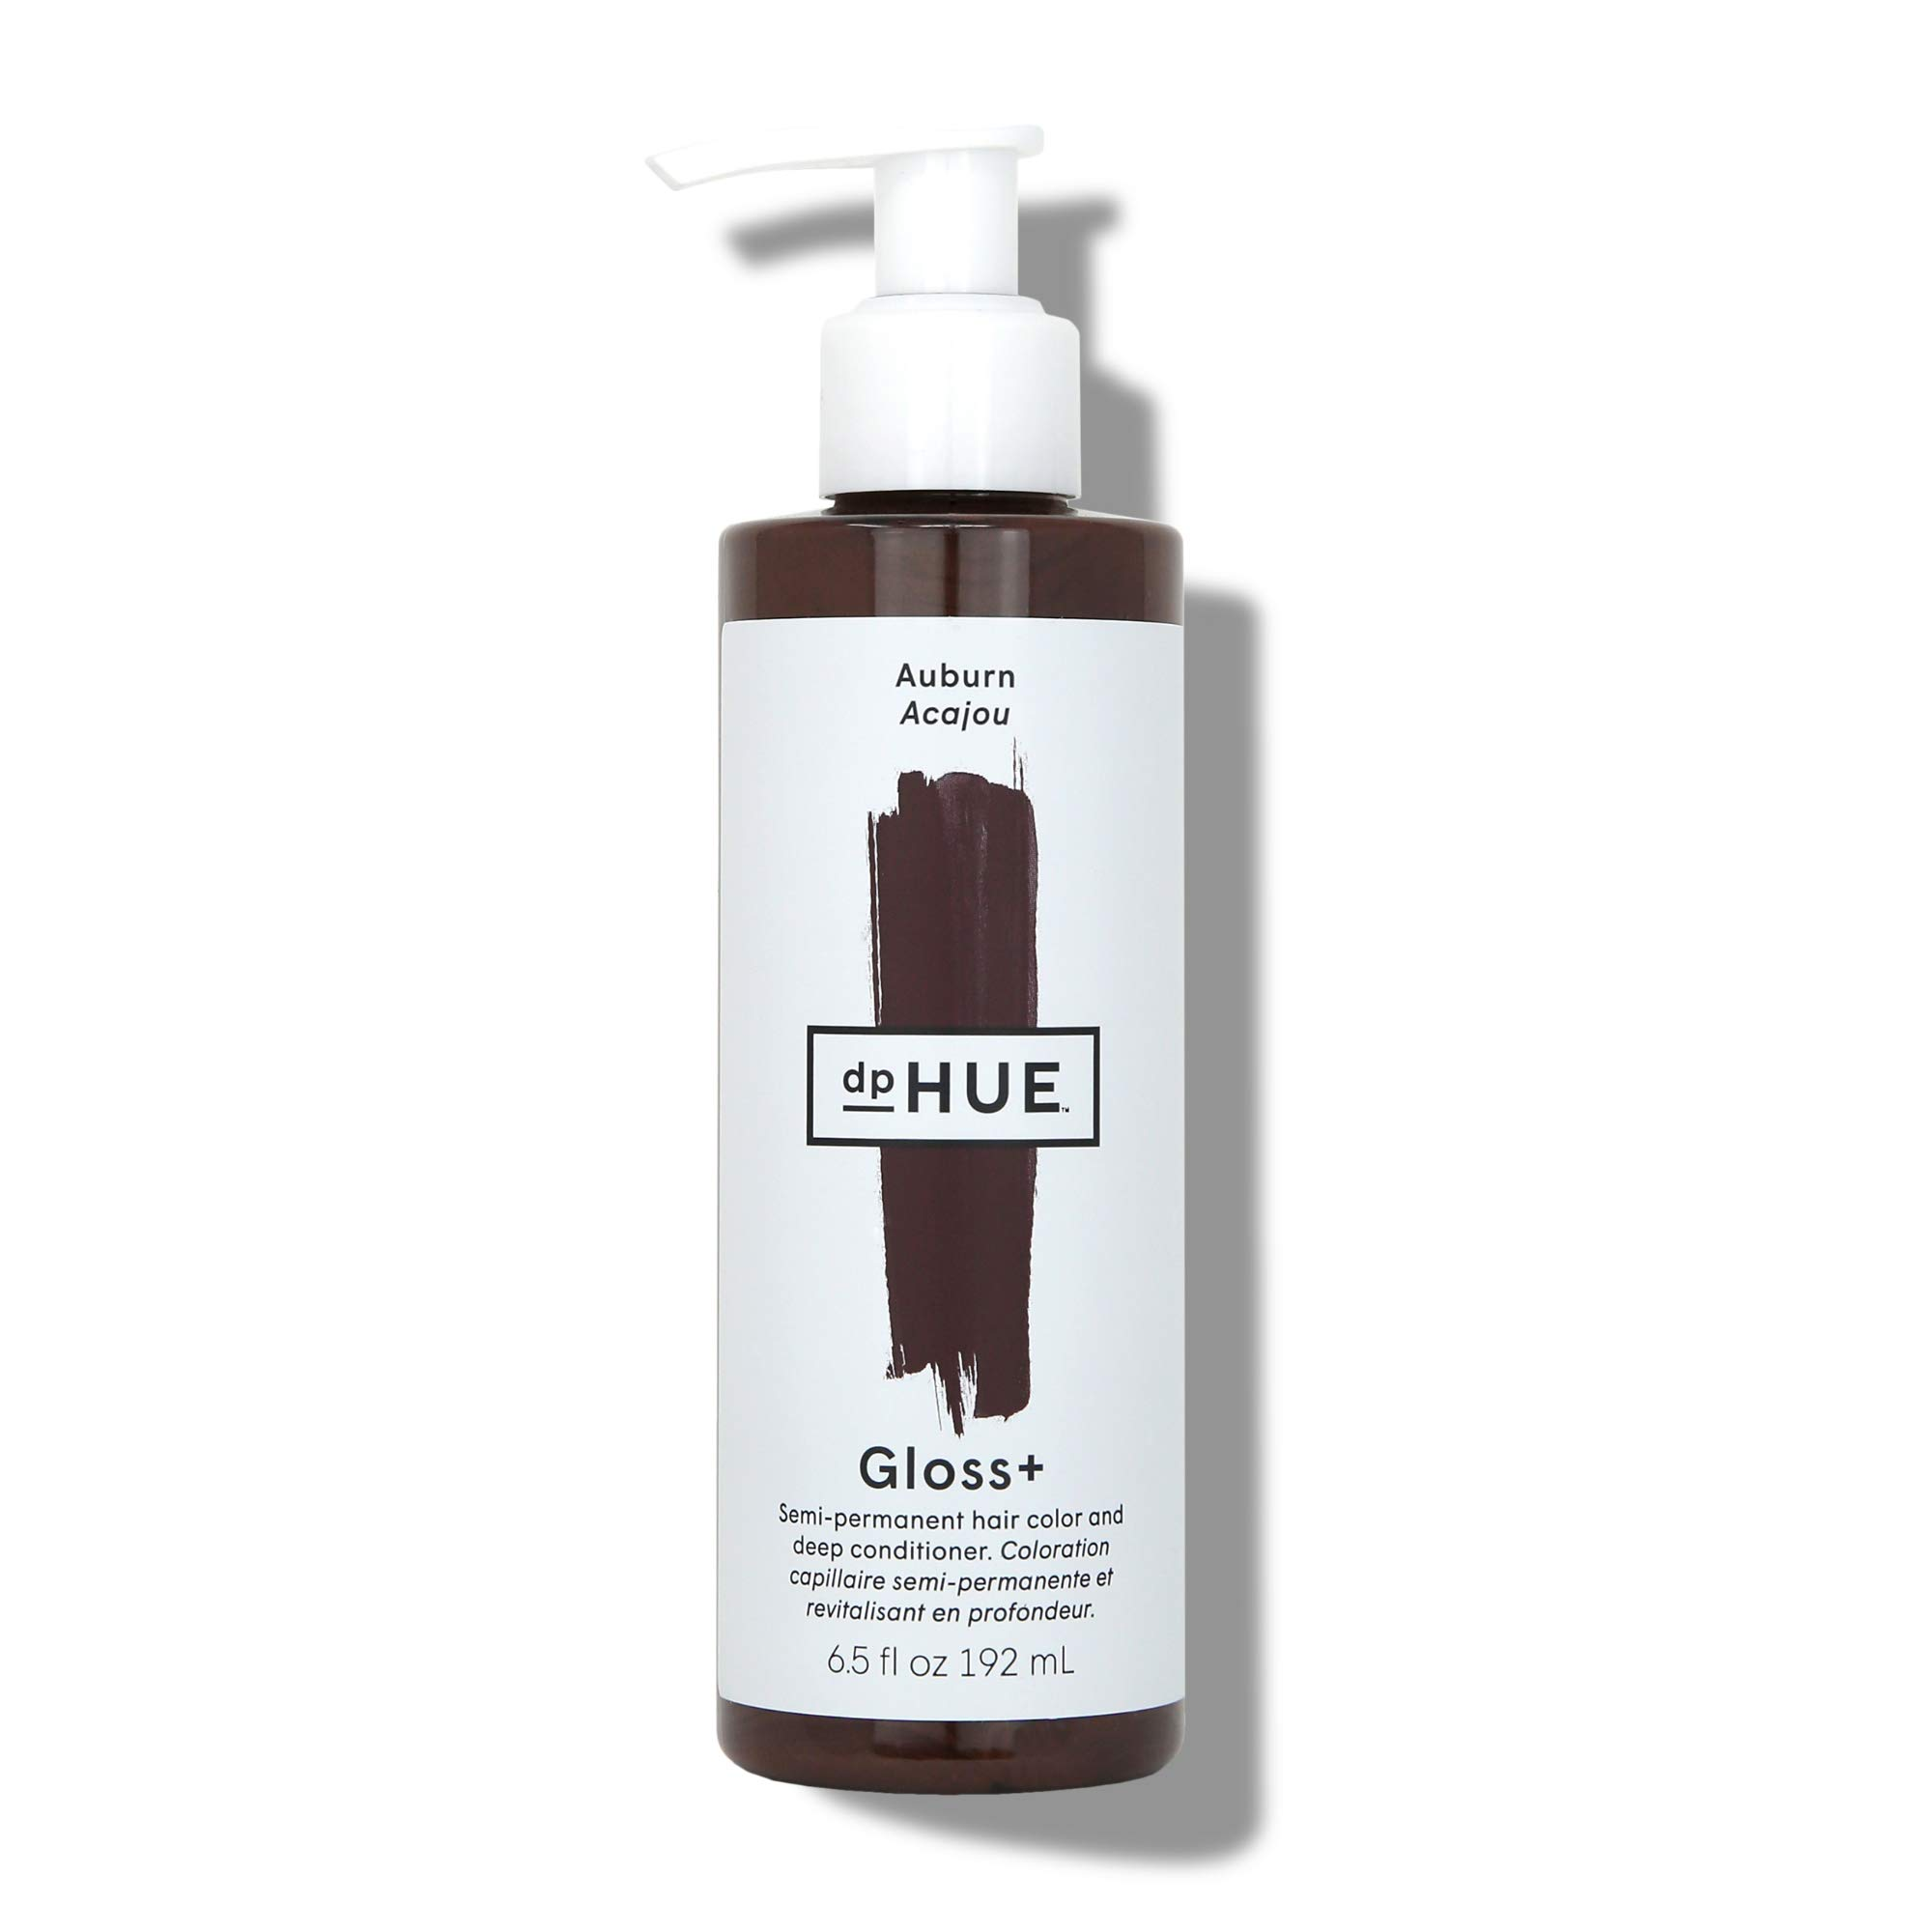 dpHUE Gloss+ - Auburn, 6.5 oz - Color-Boosting Semi-Permanent Hair Dye & Deep Conditioner - Enhance & Deepen Natural or Color-Treated Hair - Gluten-Free, Vegan